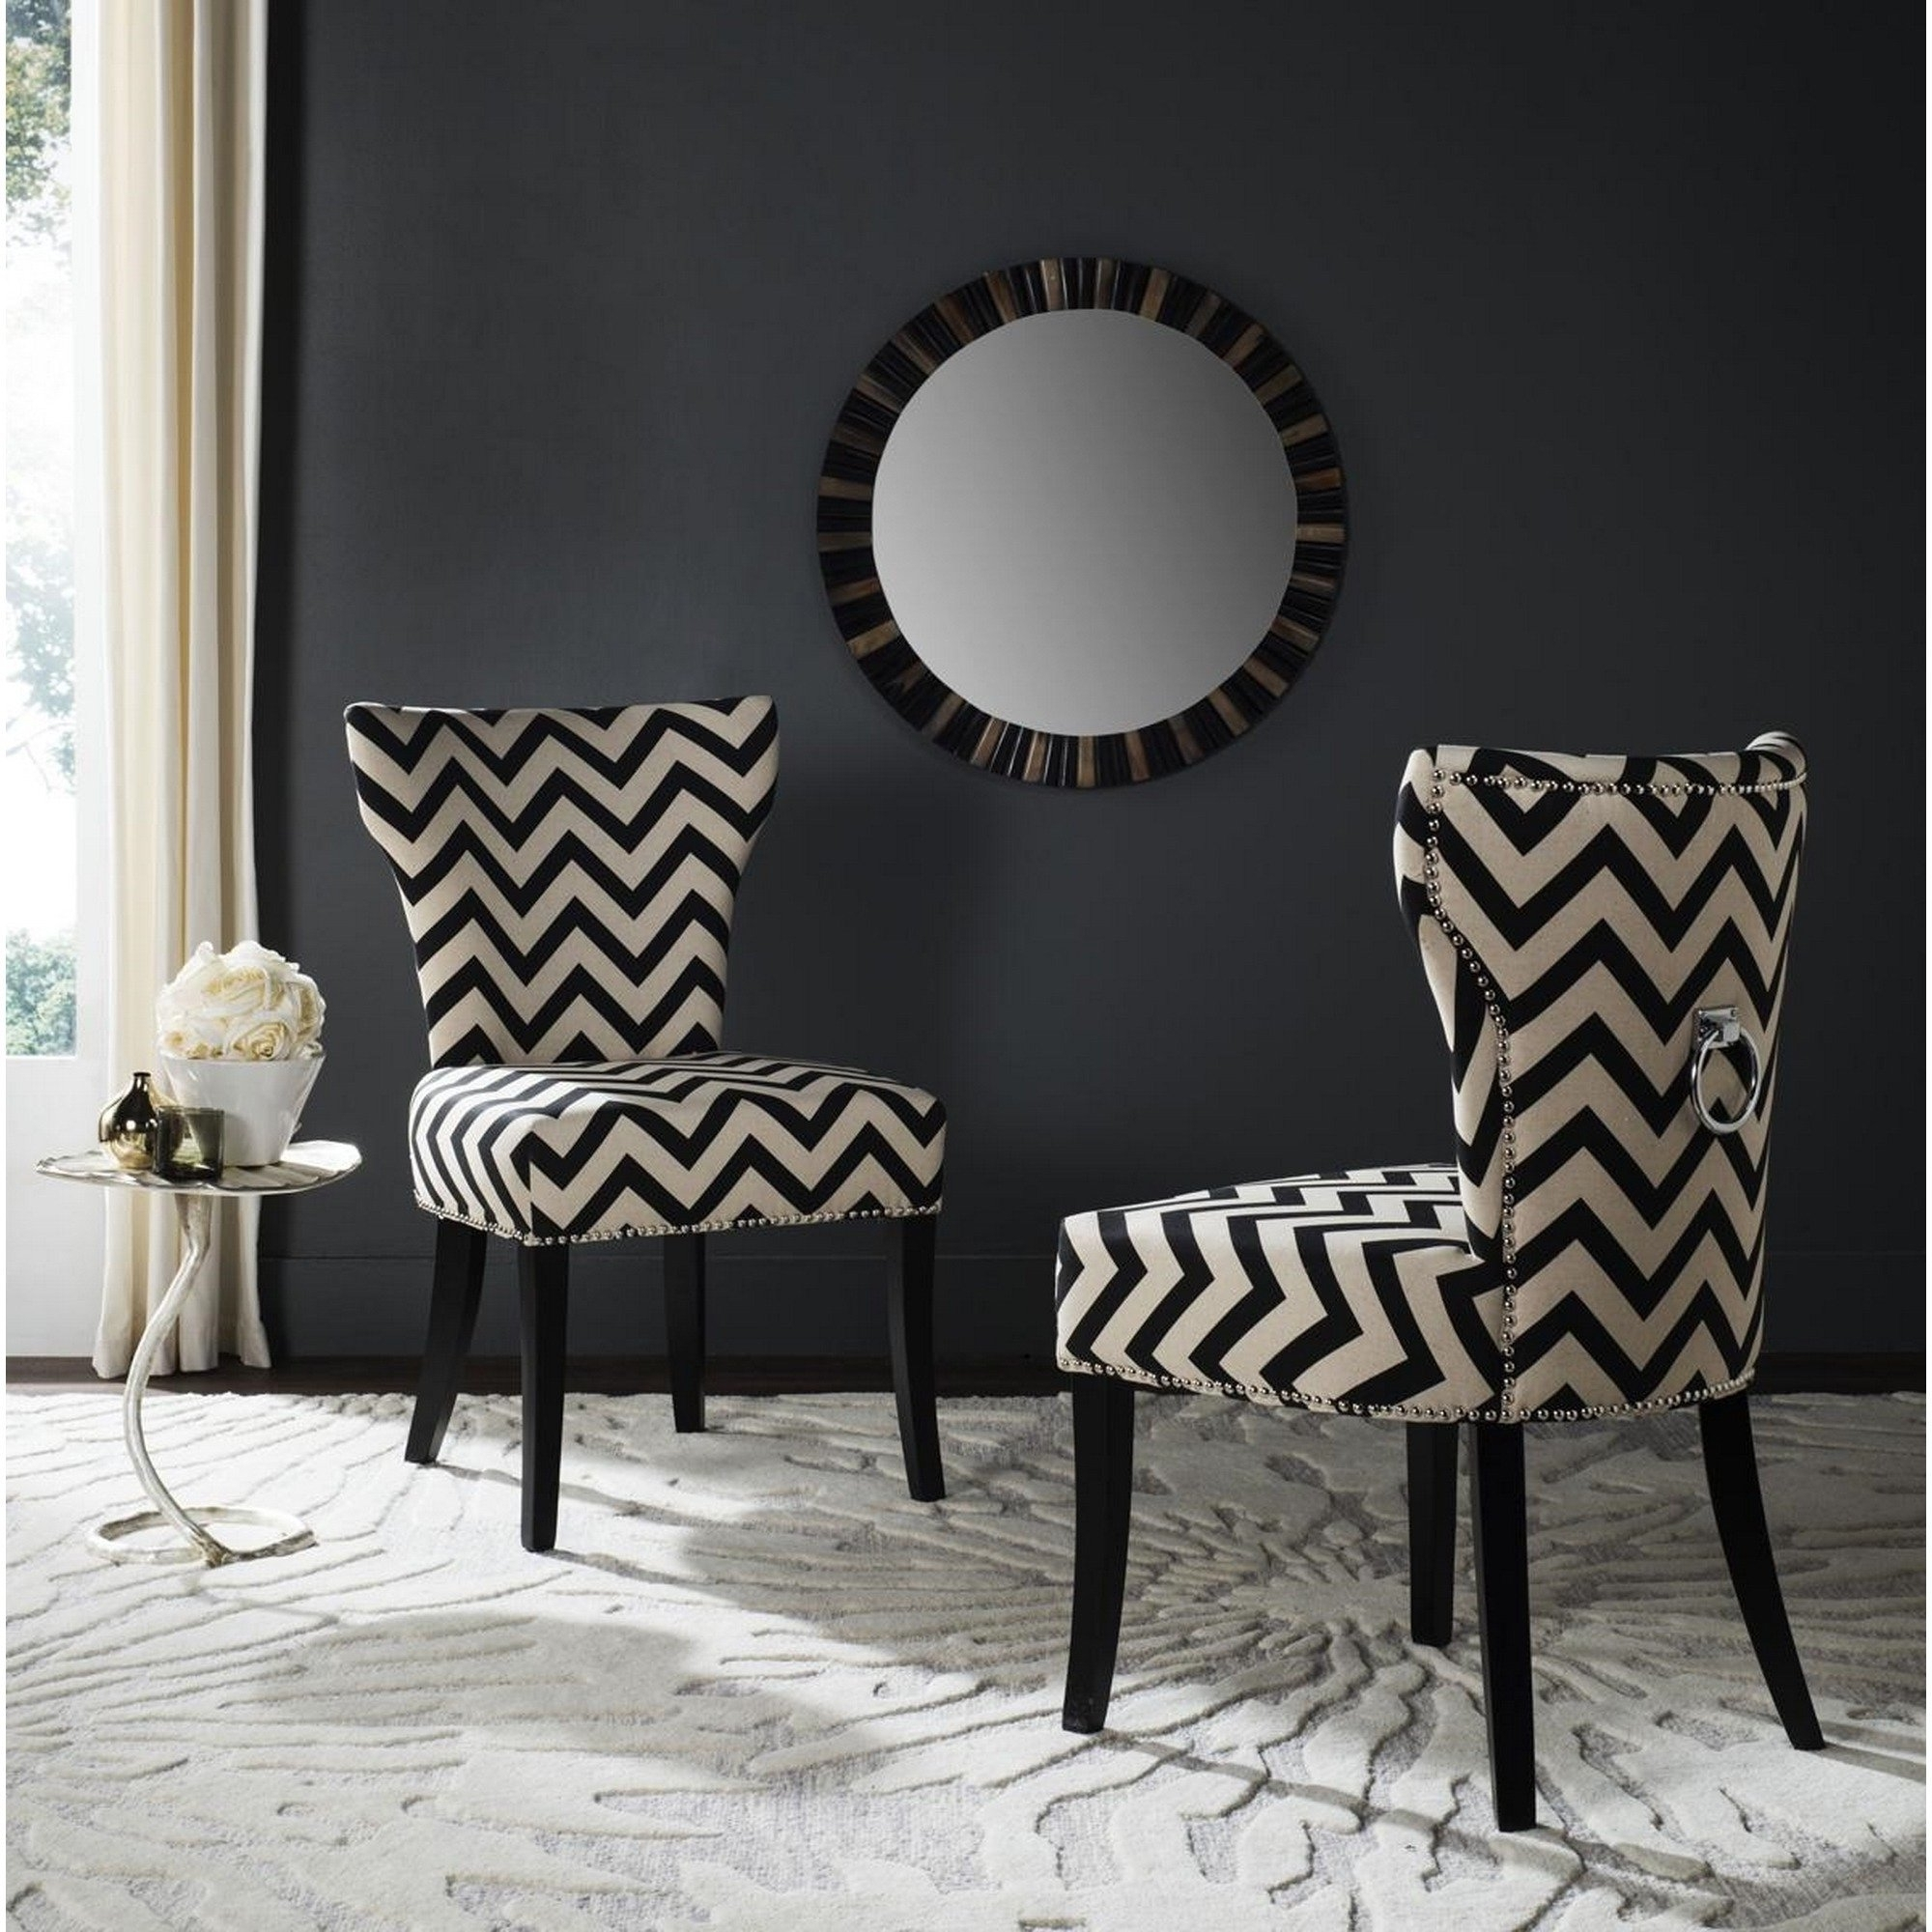 2018 Caira Black Upholstered Side Chairs Inside Shop Safavieh En Vogue Dining Jappic Chevron Black/white Ring Dining (View 10 of 20)